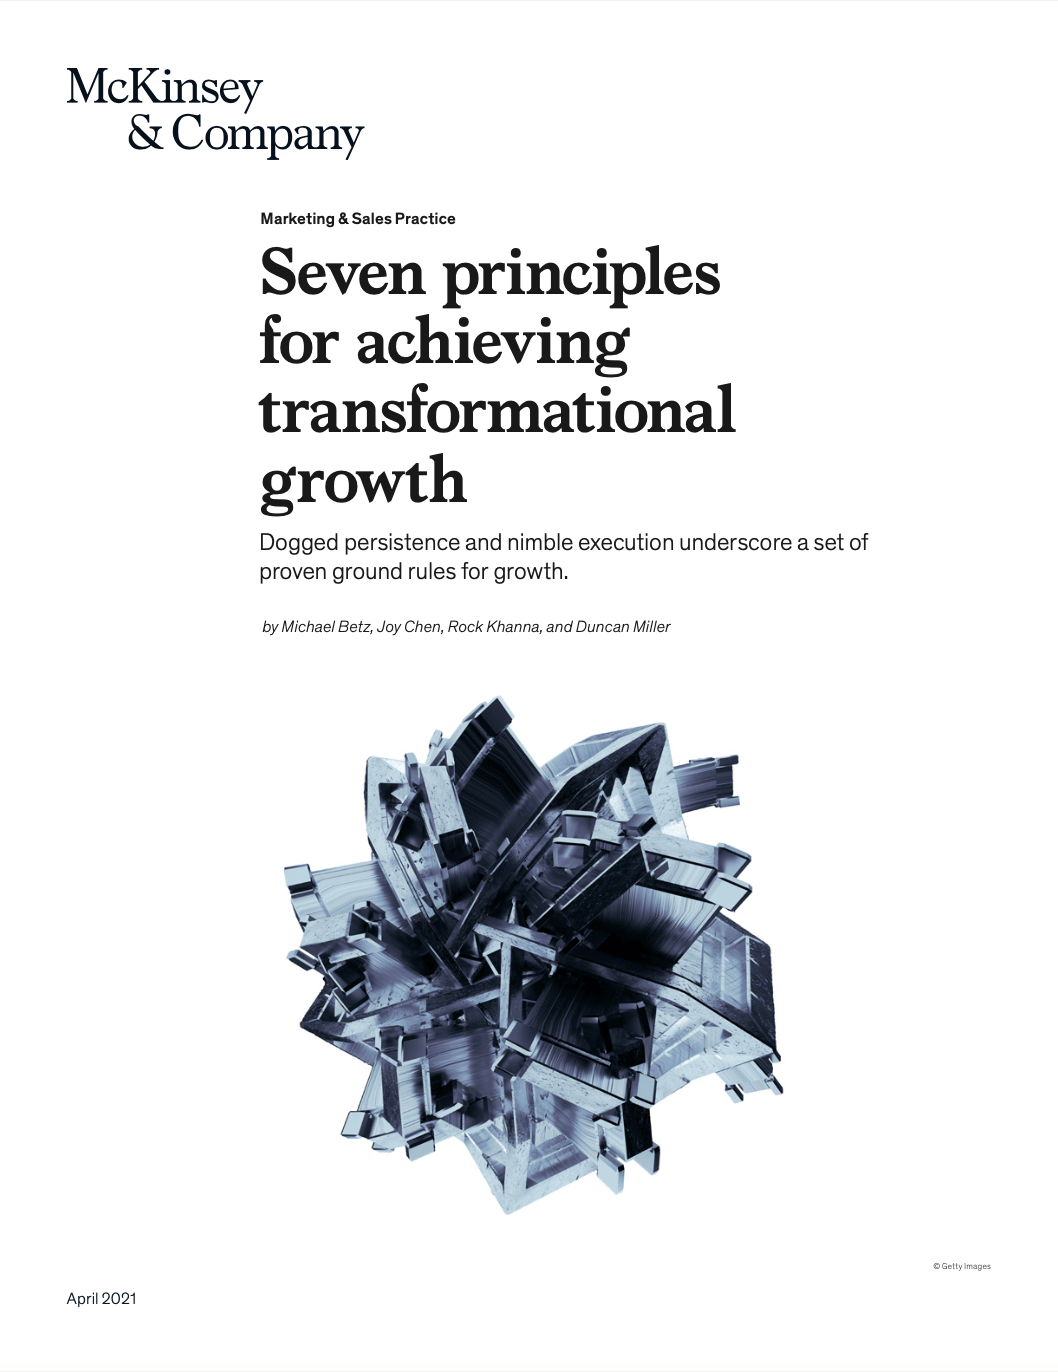 Seven principles for achieving transformational growth